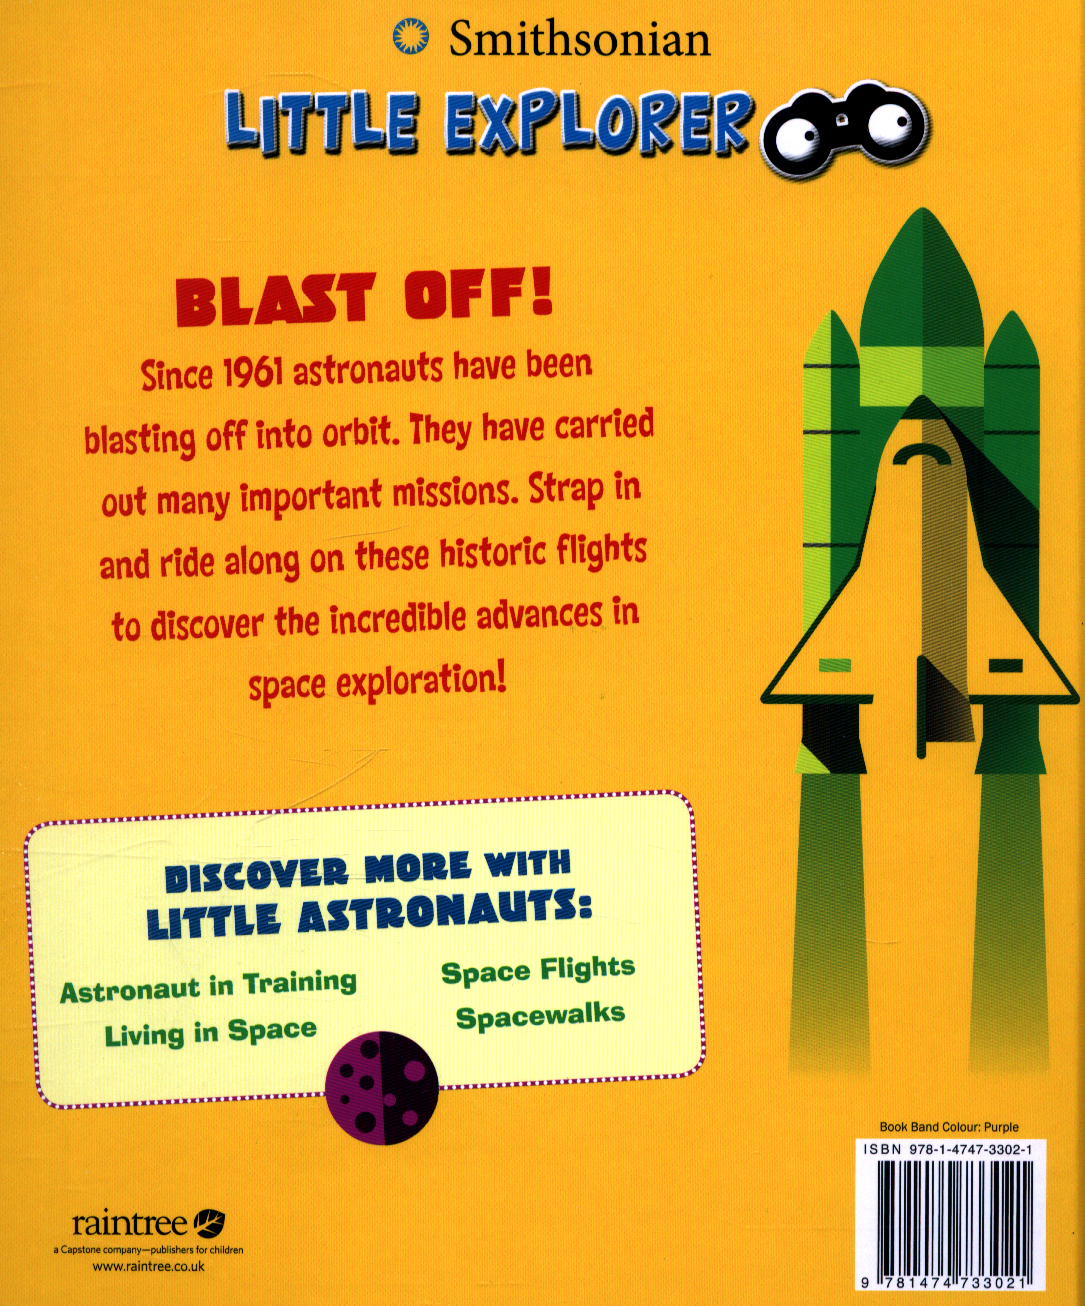 space smithsonian little explorer